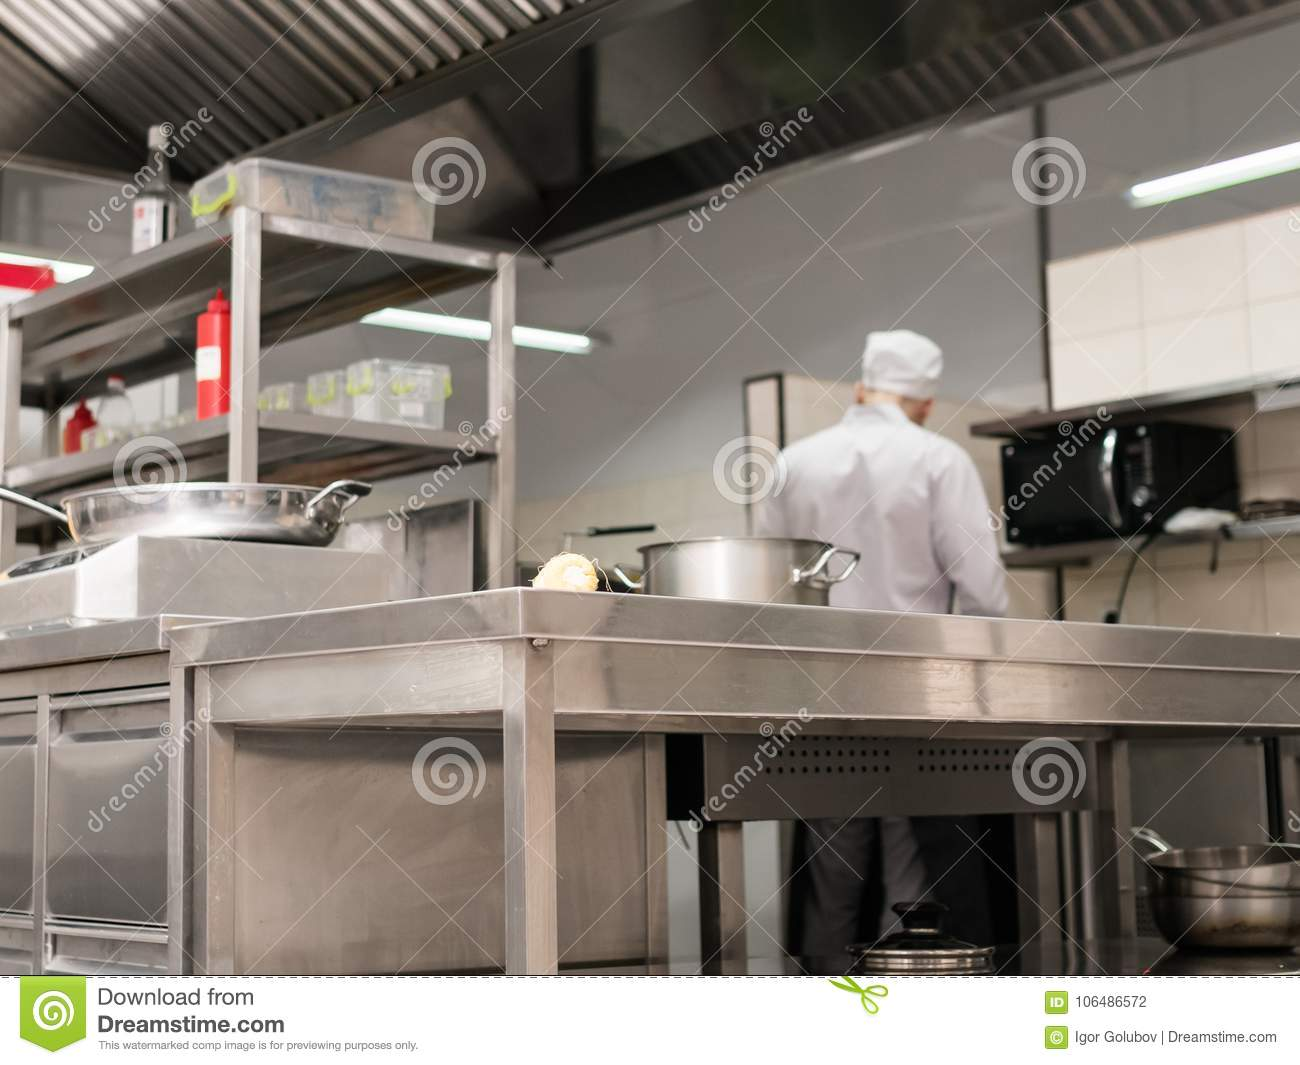 247 Modern Restaurant Kitchen Interior Workplace Photos Free Royalty Free Stock Photos From Dreamstime